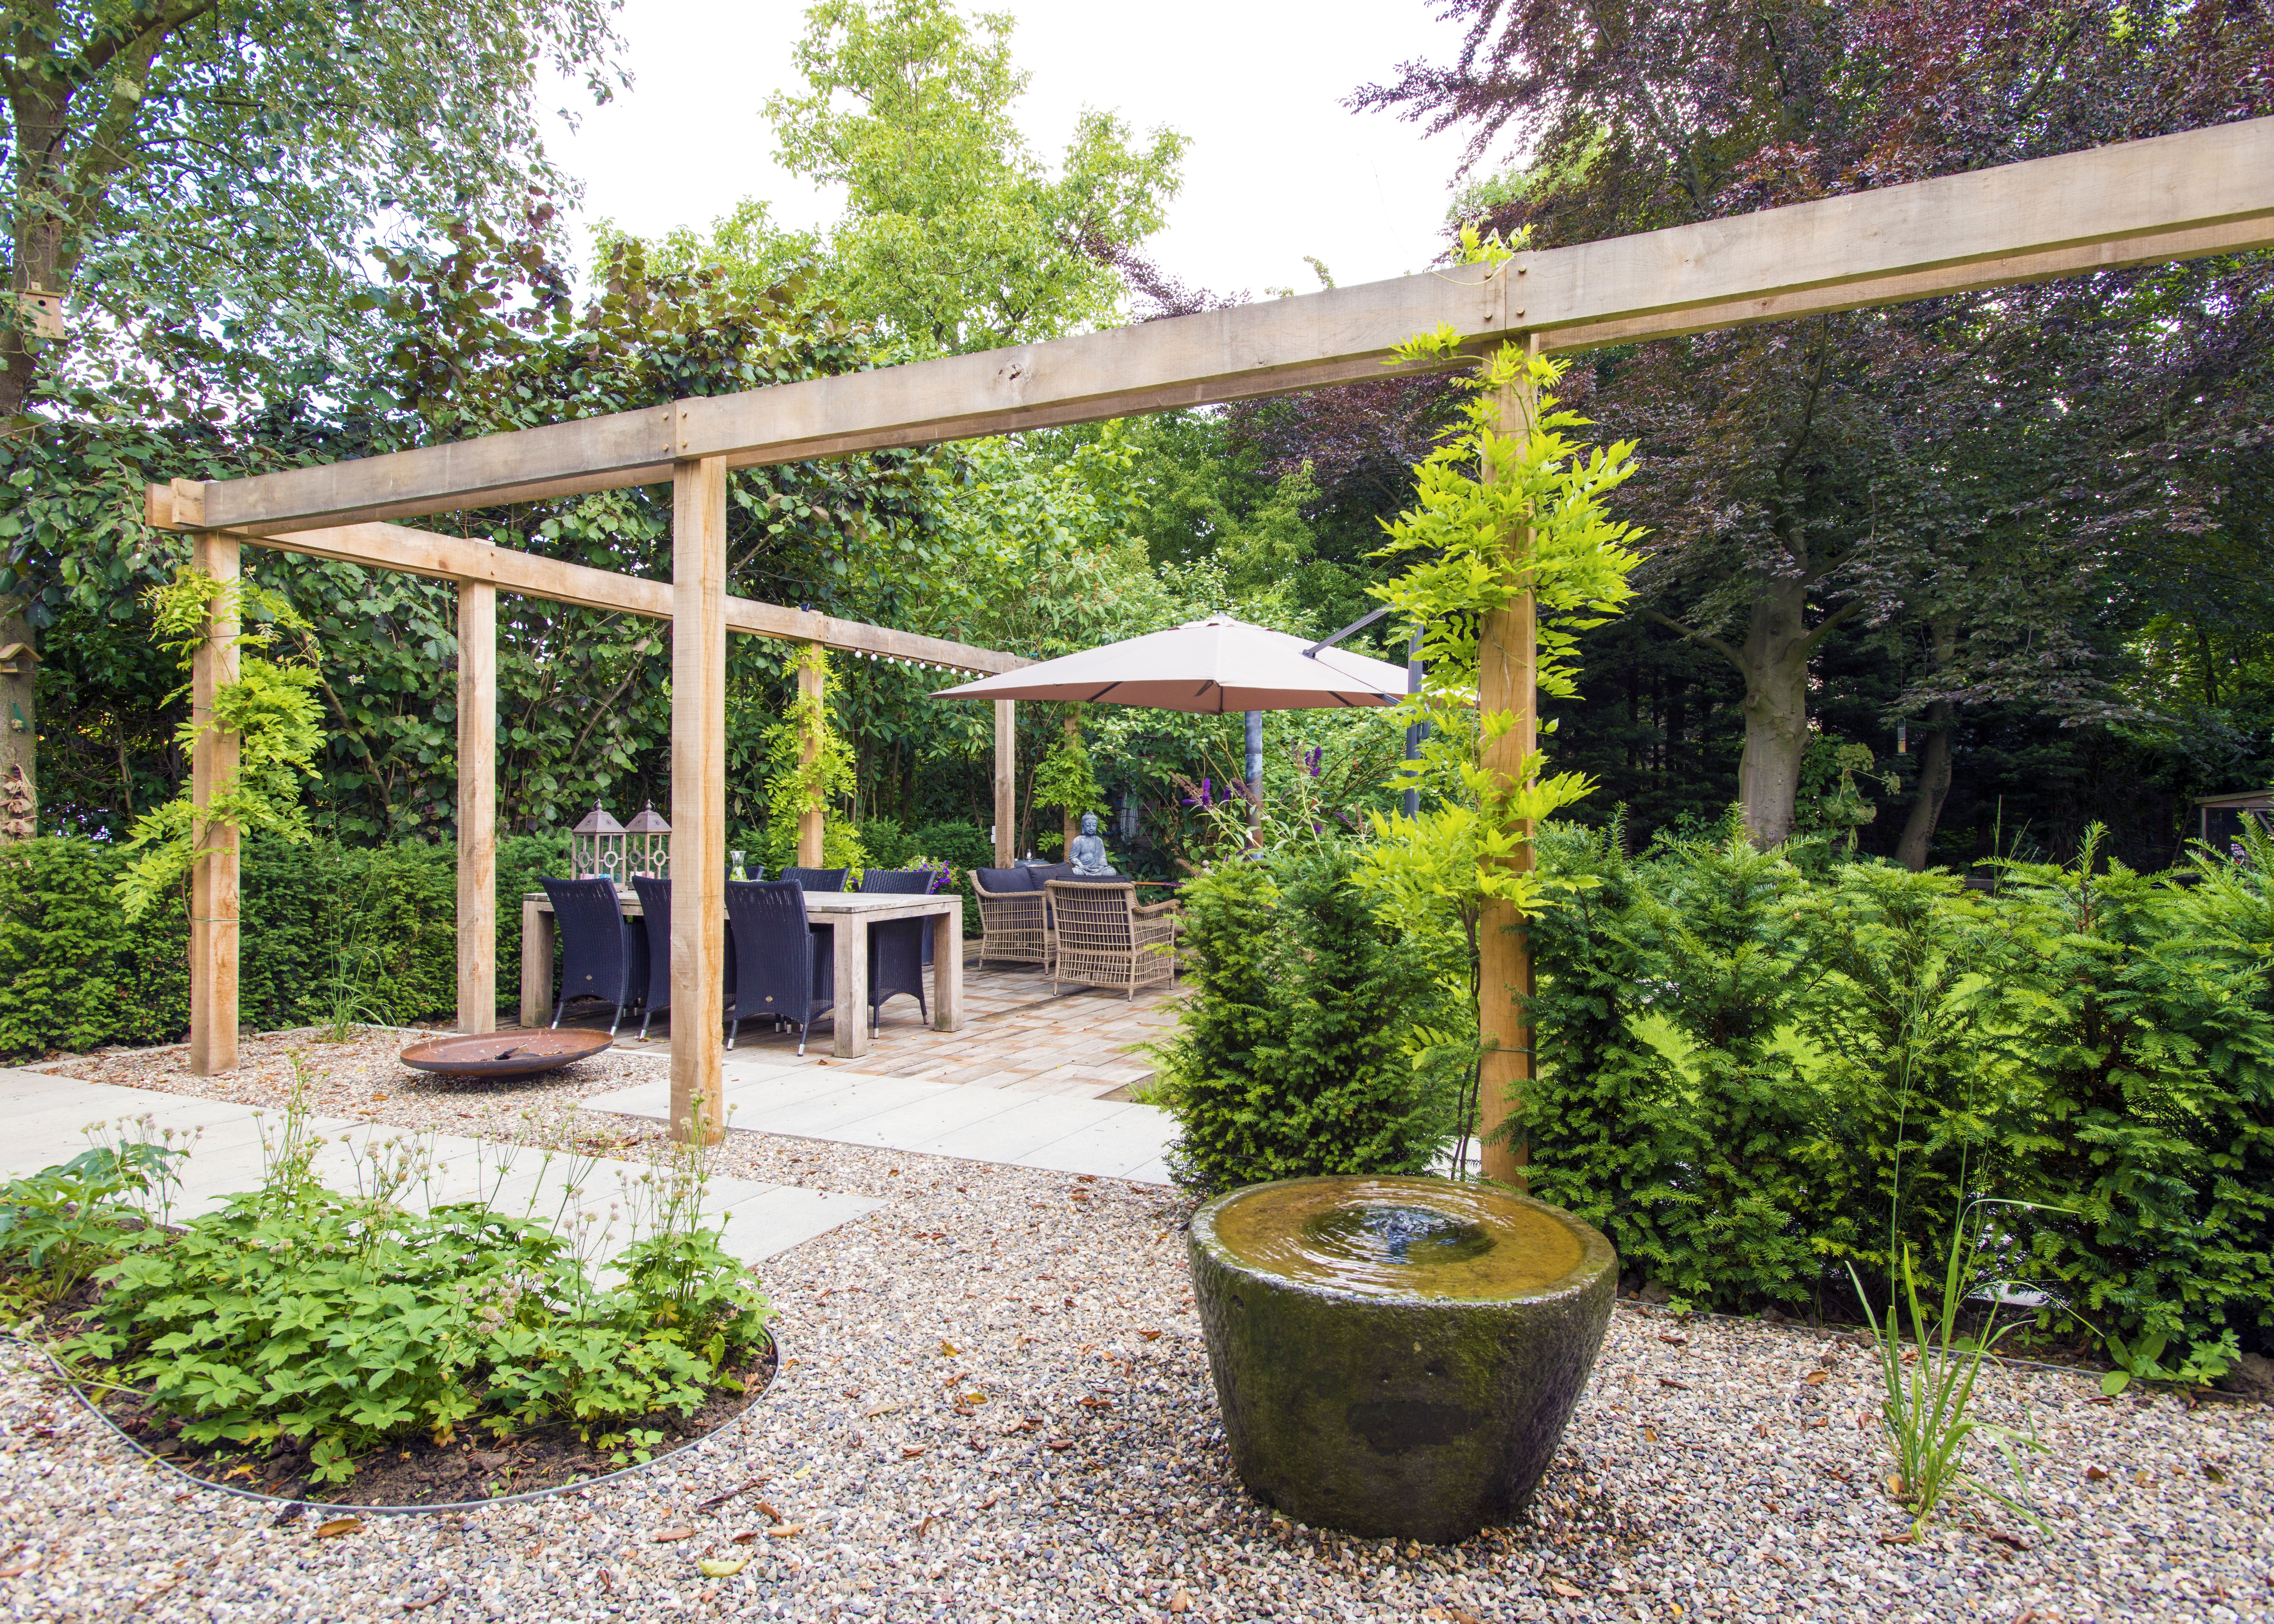 Pergola en waterornament tuin ydee pergolas and